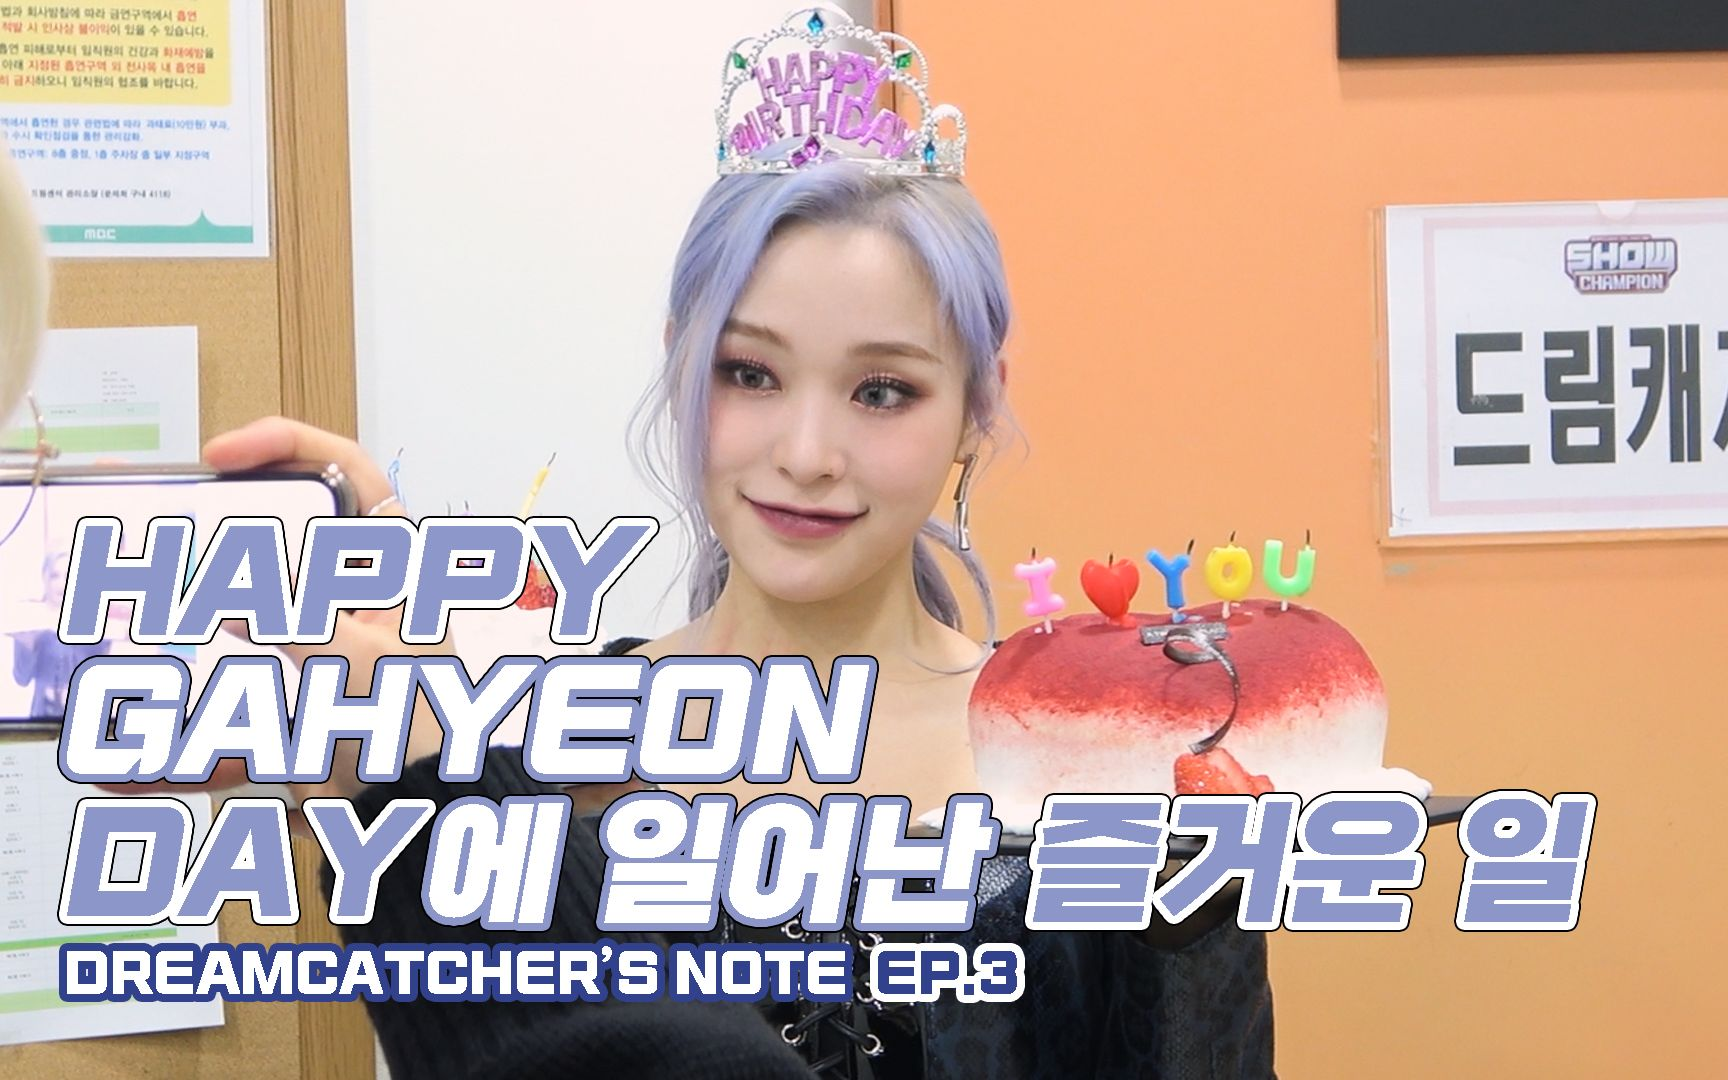 [Dreamcatcher's Note] 'Odd Eye' 活动花絮 第三篇